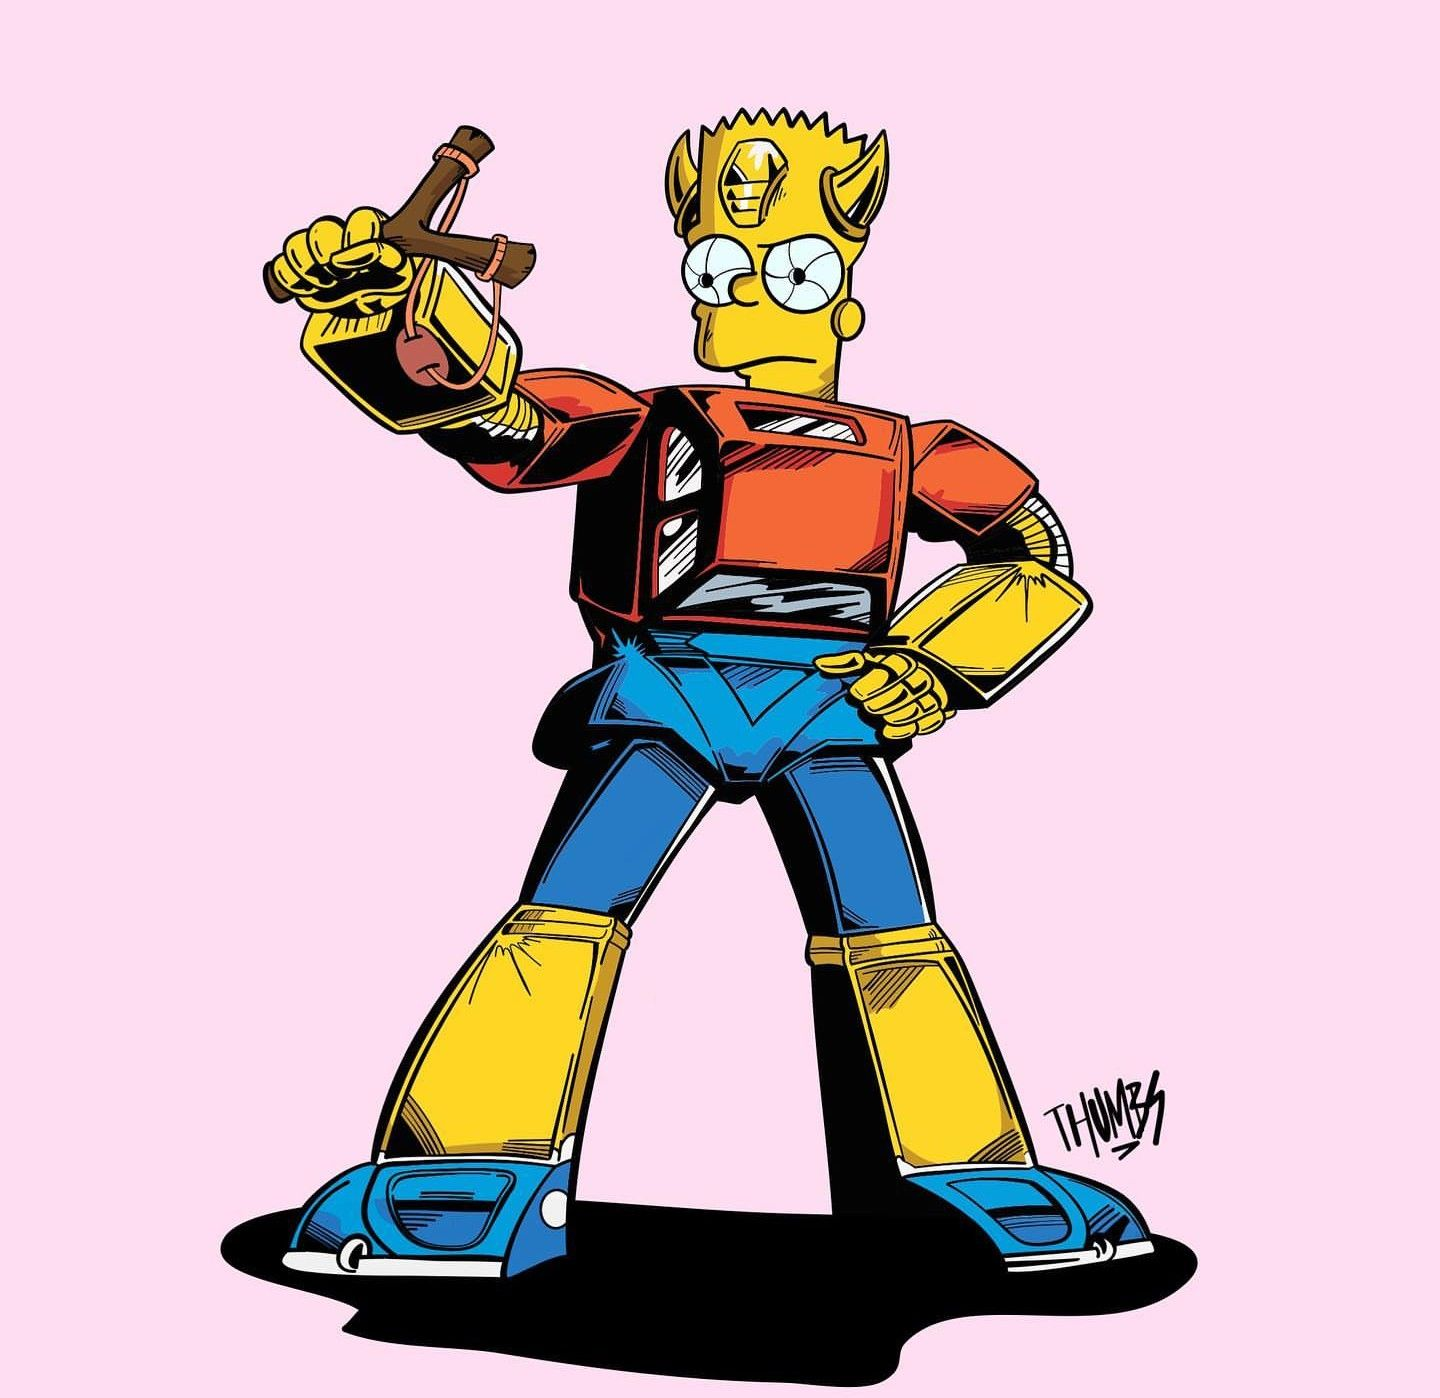 Bart Transformers The Simpsons Transformers Comic 80s Cartoons Transformers Funny